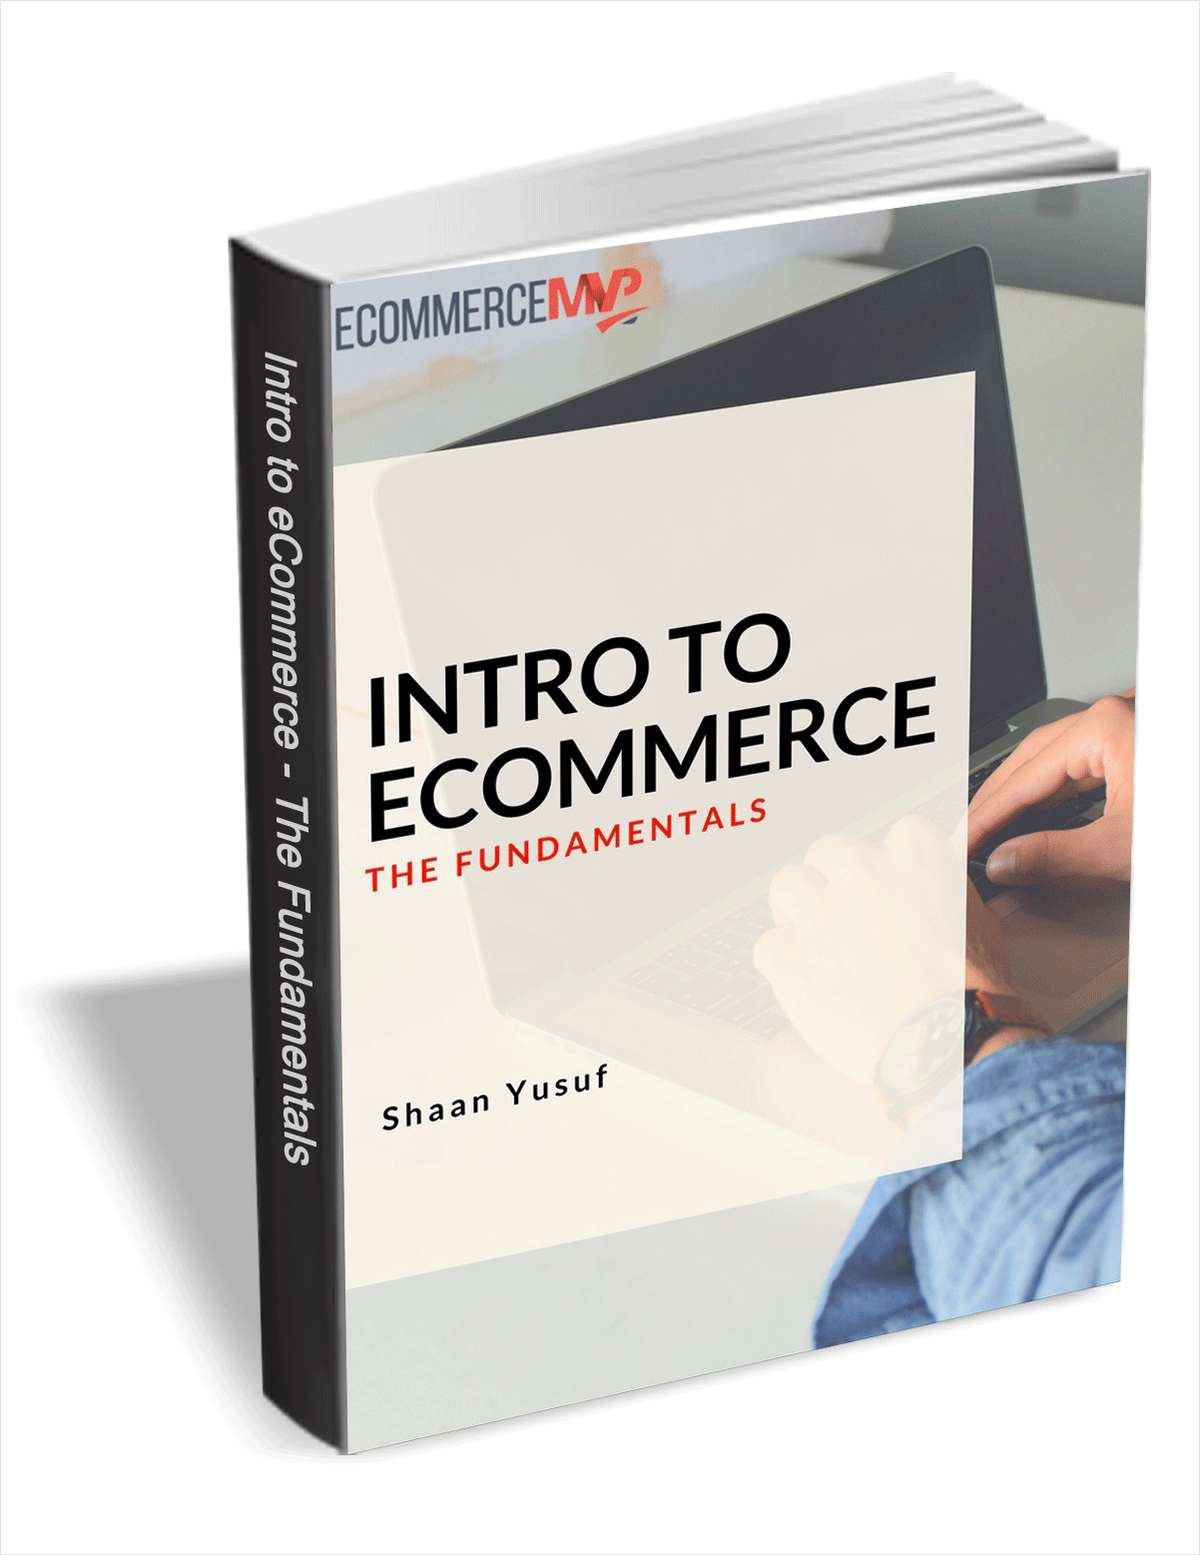 Intro to eCommerce - The Fundamentals